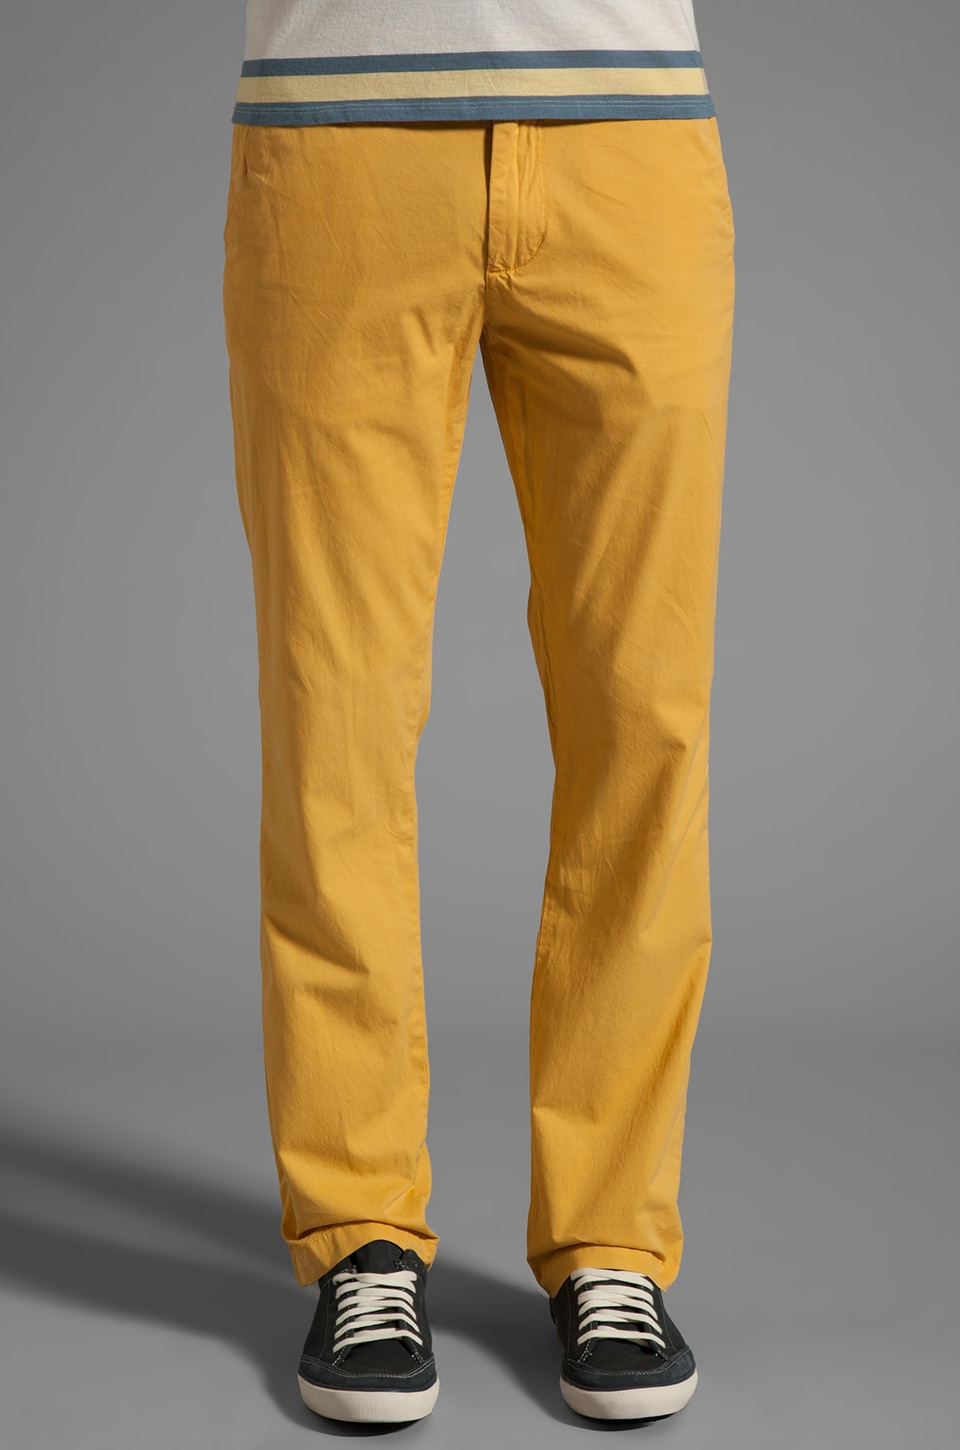 life/after/denim 5 OZ. Slim Fit Chino in Goldengate